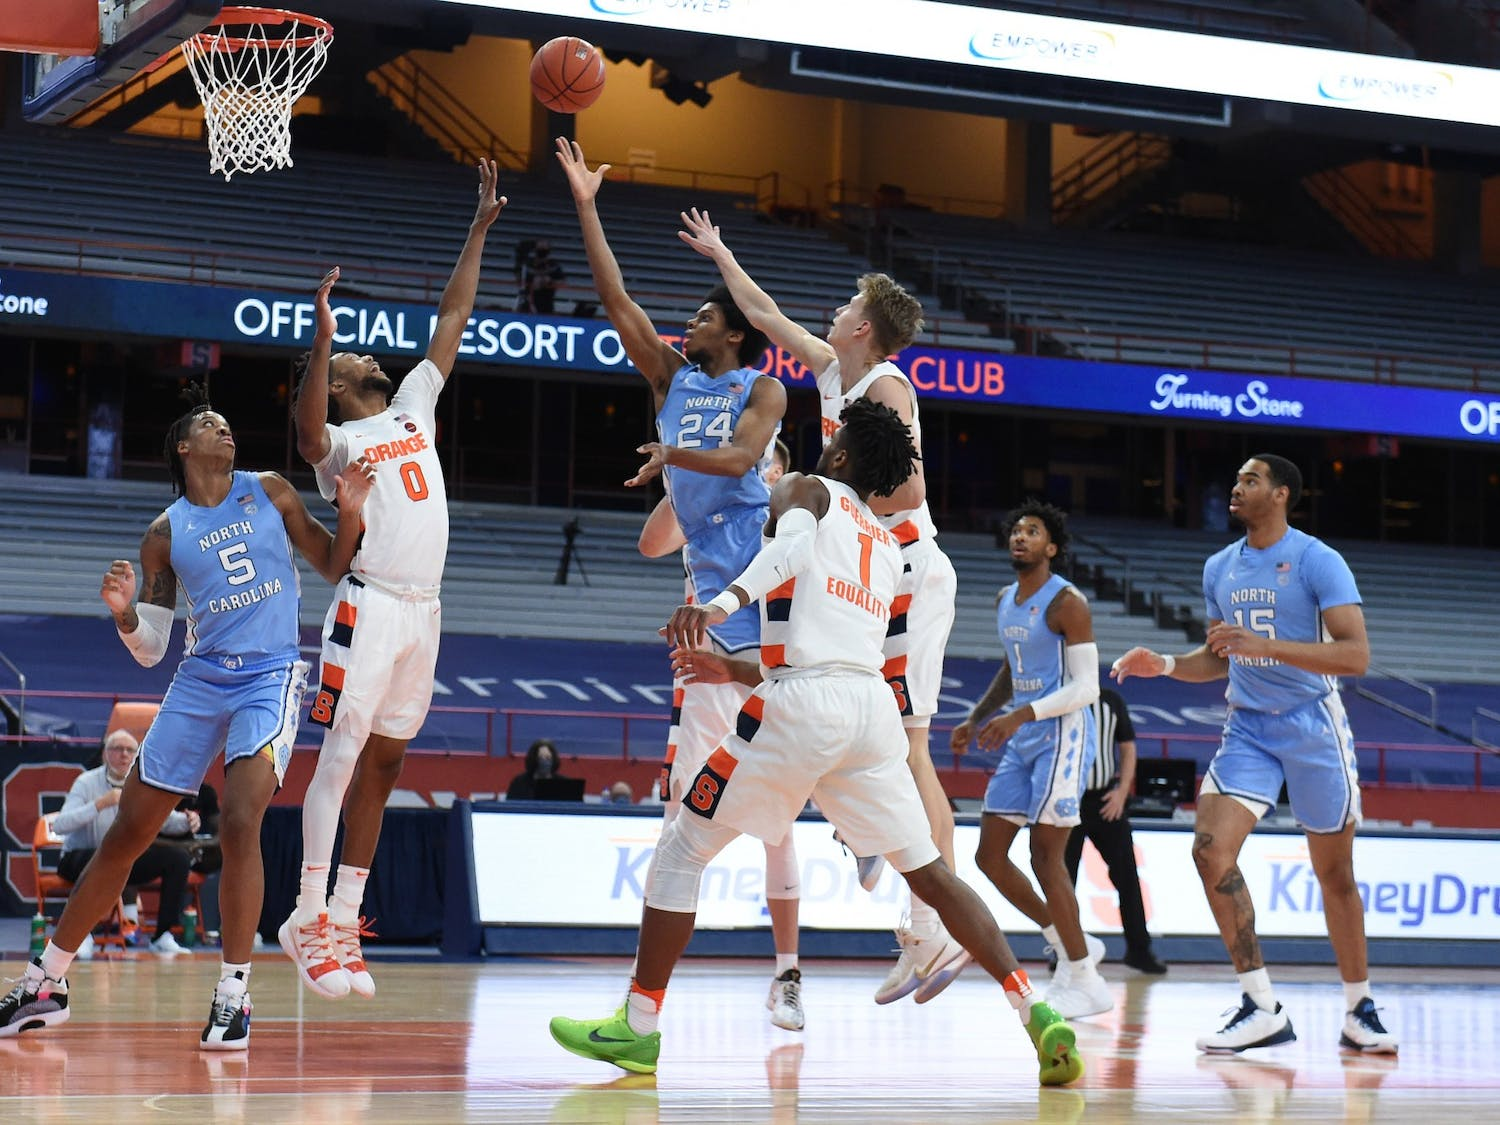 North Carolina Tar Heels guard Kerwin Walton (24) slices the lane  in a game between Syracuse and North Carolina  at the Carrier Dome in Syracuse N.Y. March 1, 2021. Photo courtesy of Dennis Nett/Syracuse Athletics.